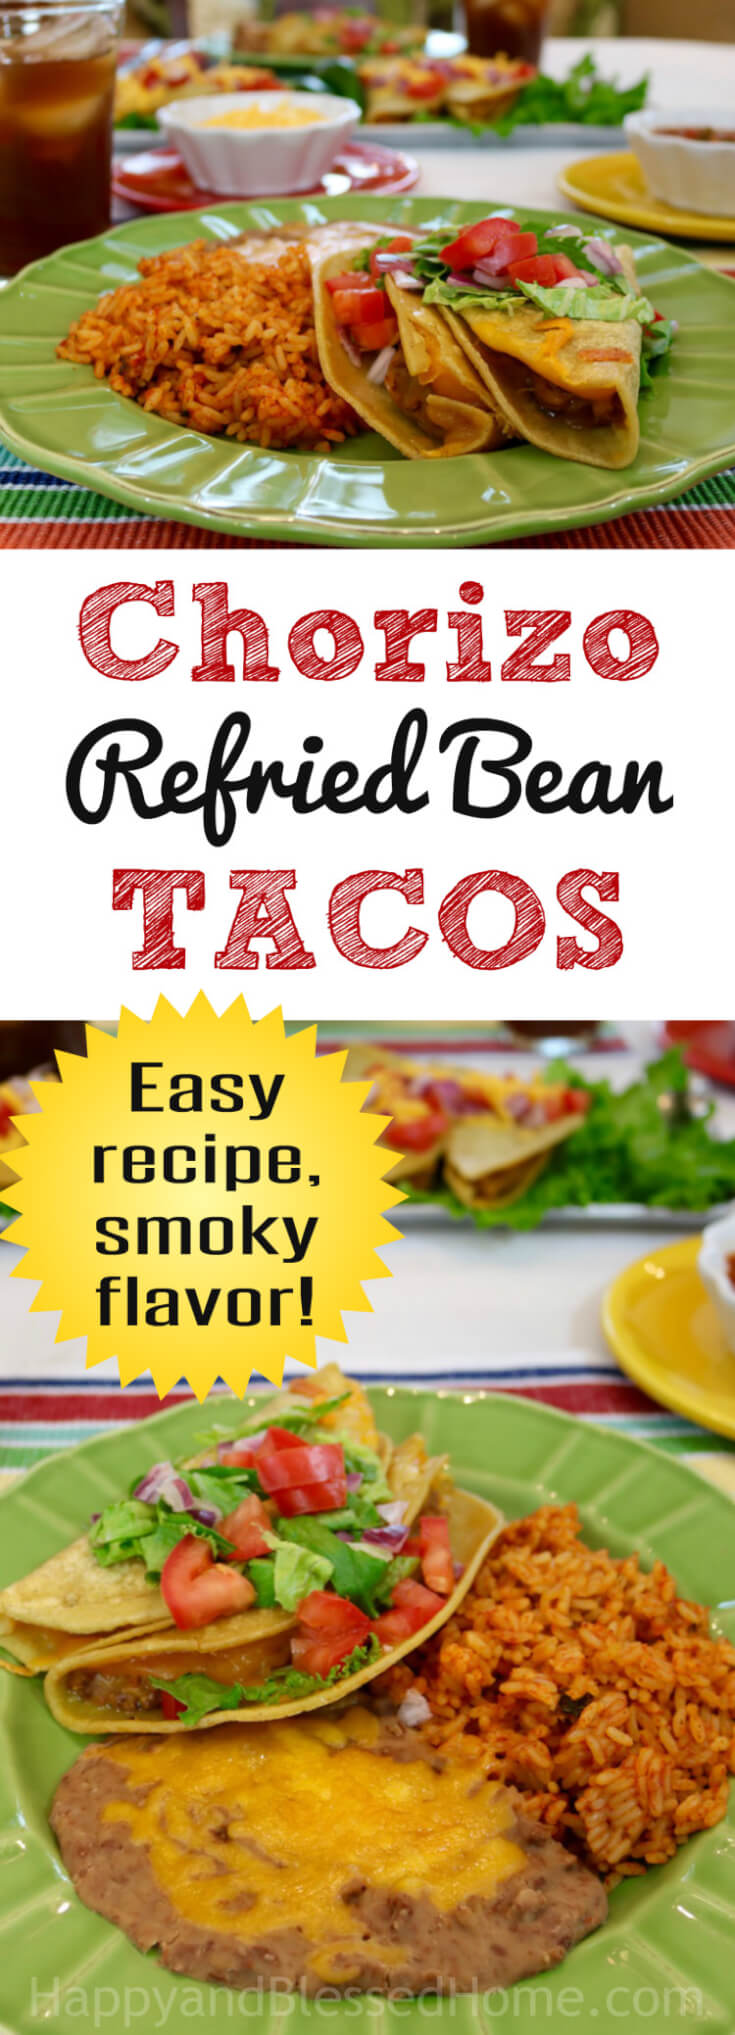 easy-recipe-for-chorizo-refried-bean-tacos-packed-with-authentic-mexican-flavors